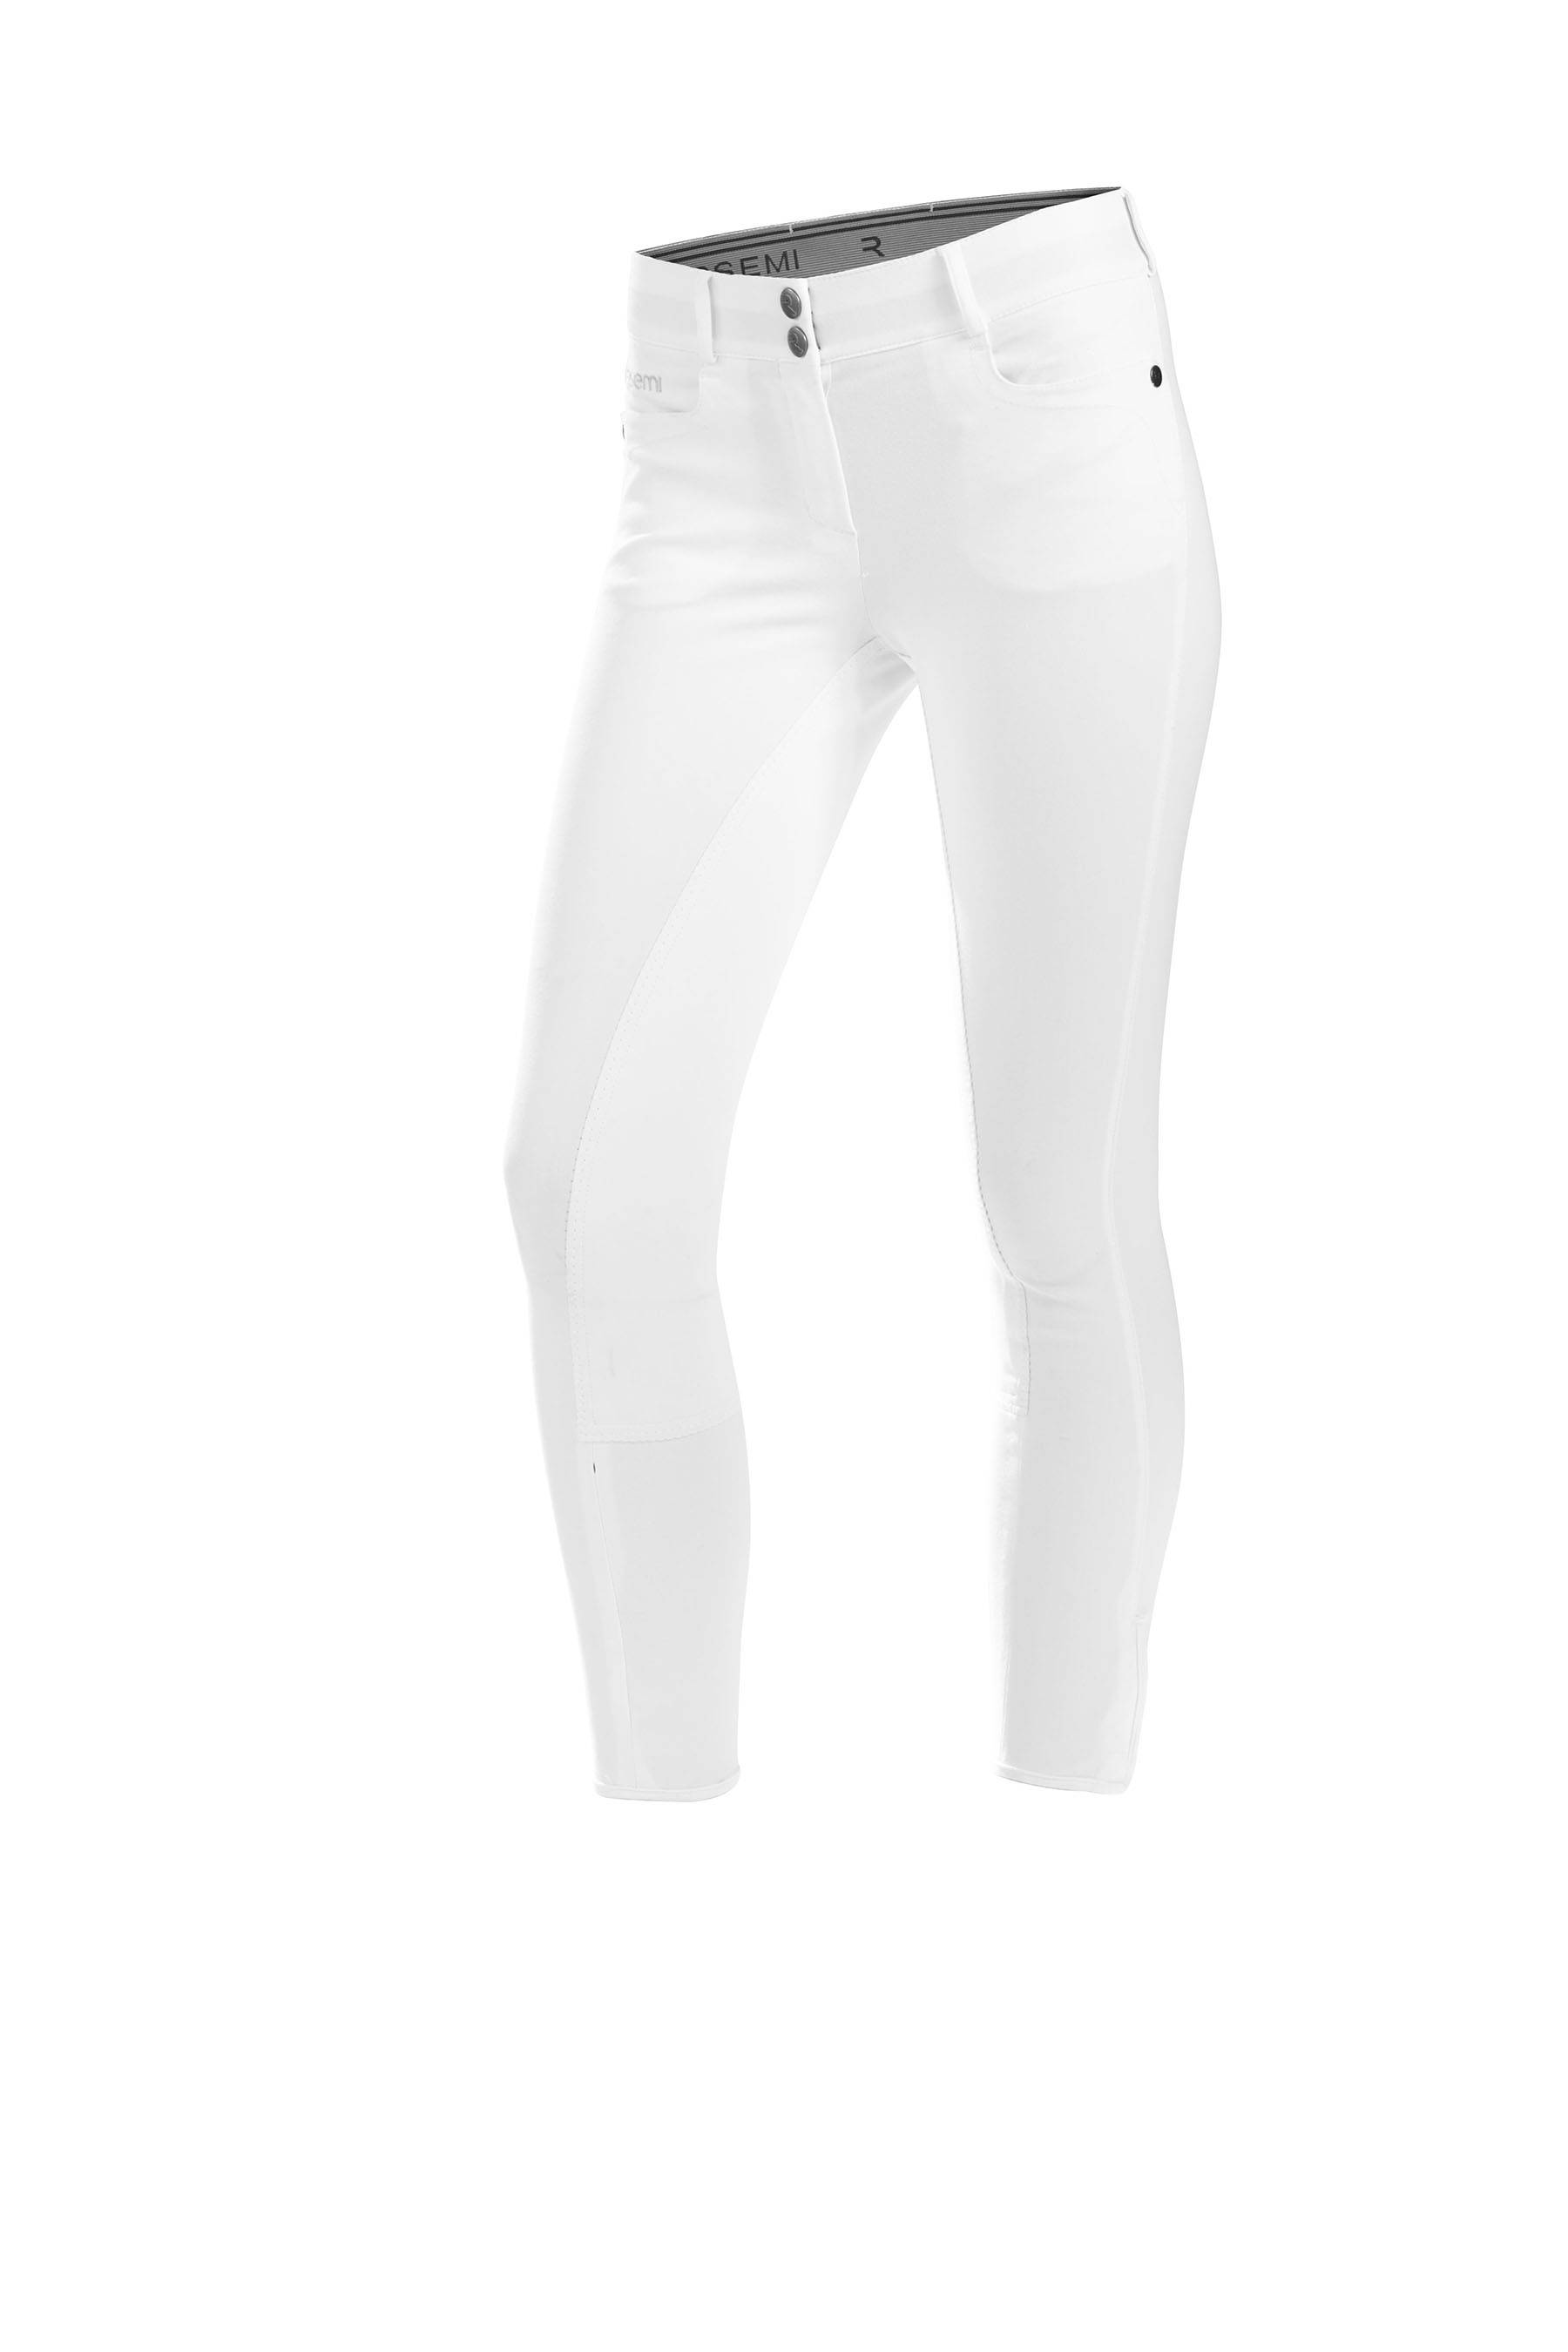 Gersemi Sigyn Knee Patch Breeches - Ladies - White